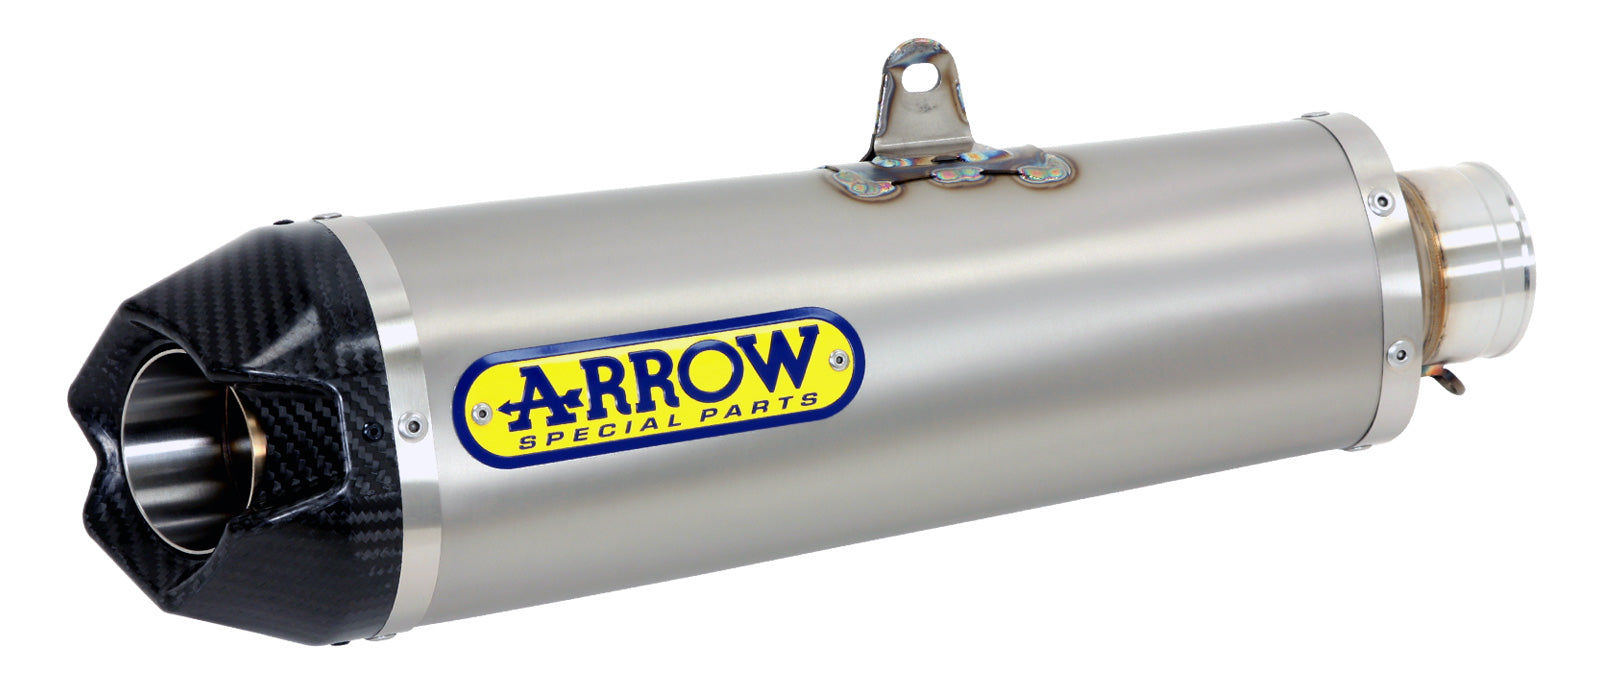 Works Silencer, Exhaust Silencer, Arrow Exhausts - Race and Trackday Parts